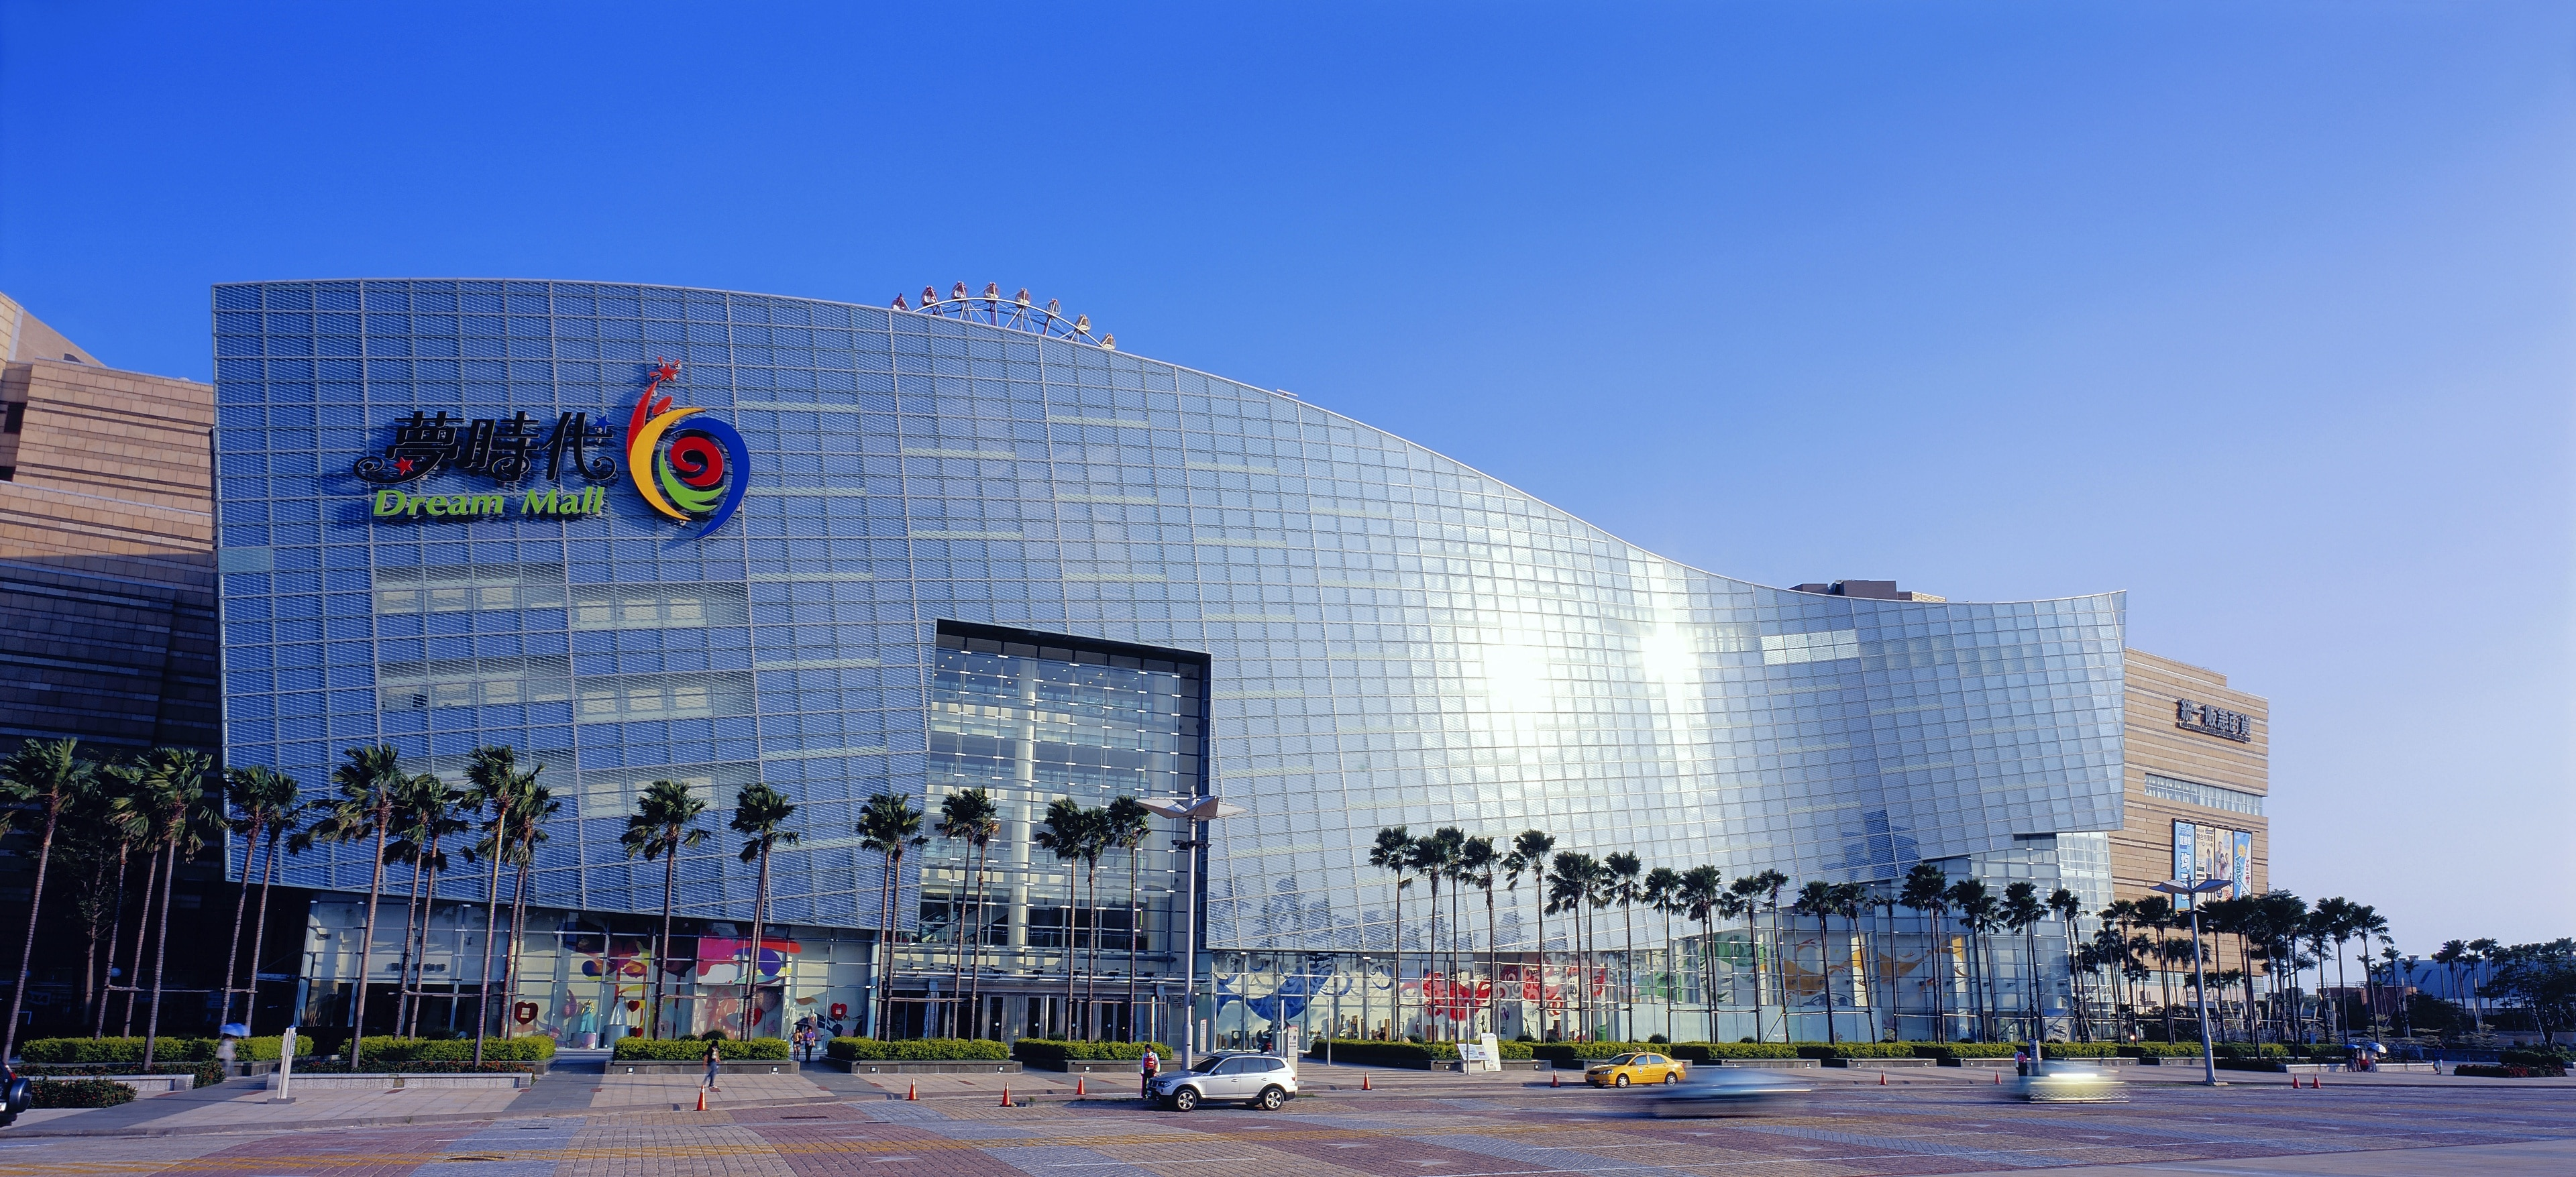 During your trip to Kaohsiung, you can enjoy retail therapy at Dream Mall. Stroll along the waterfront or experience the art scene in this culturally rich area.